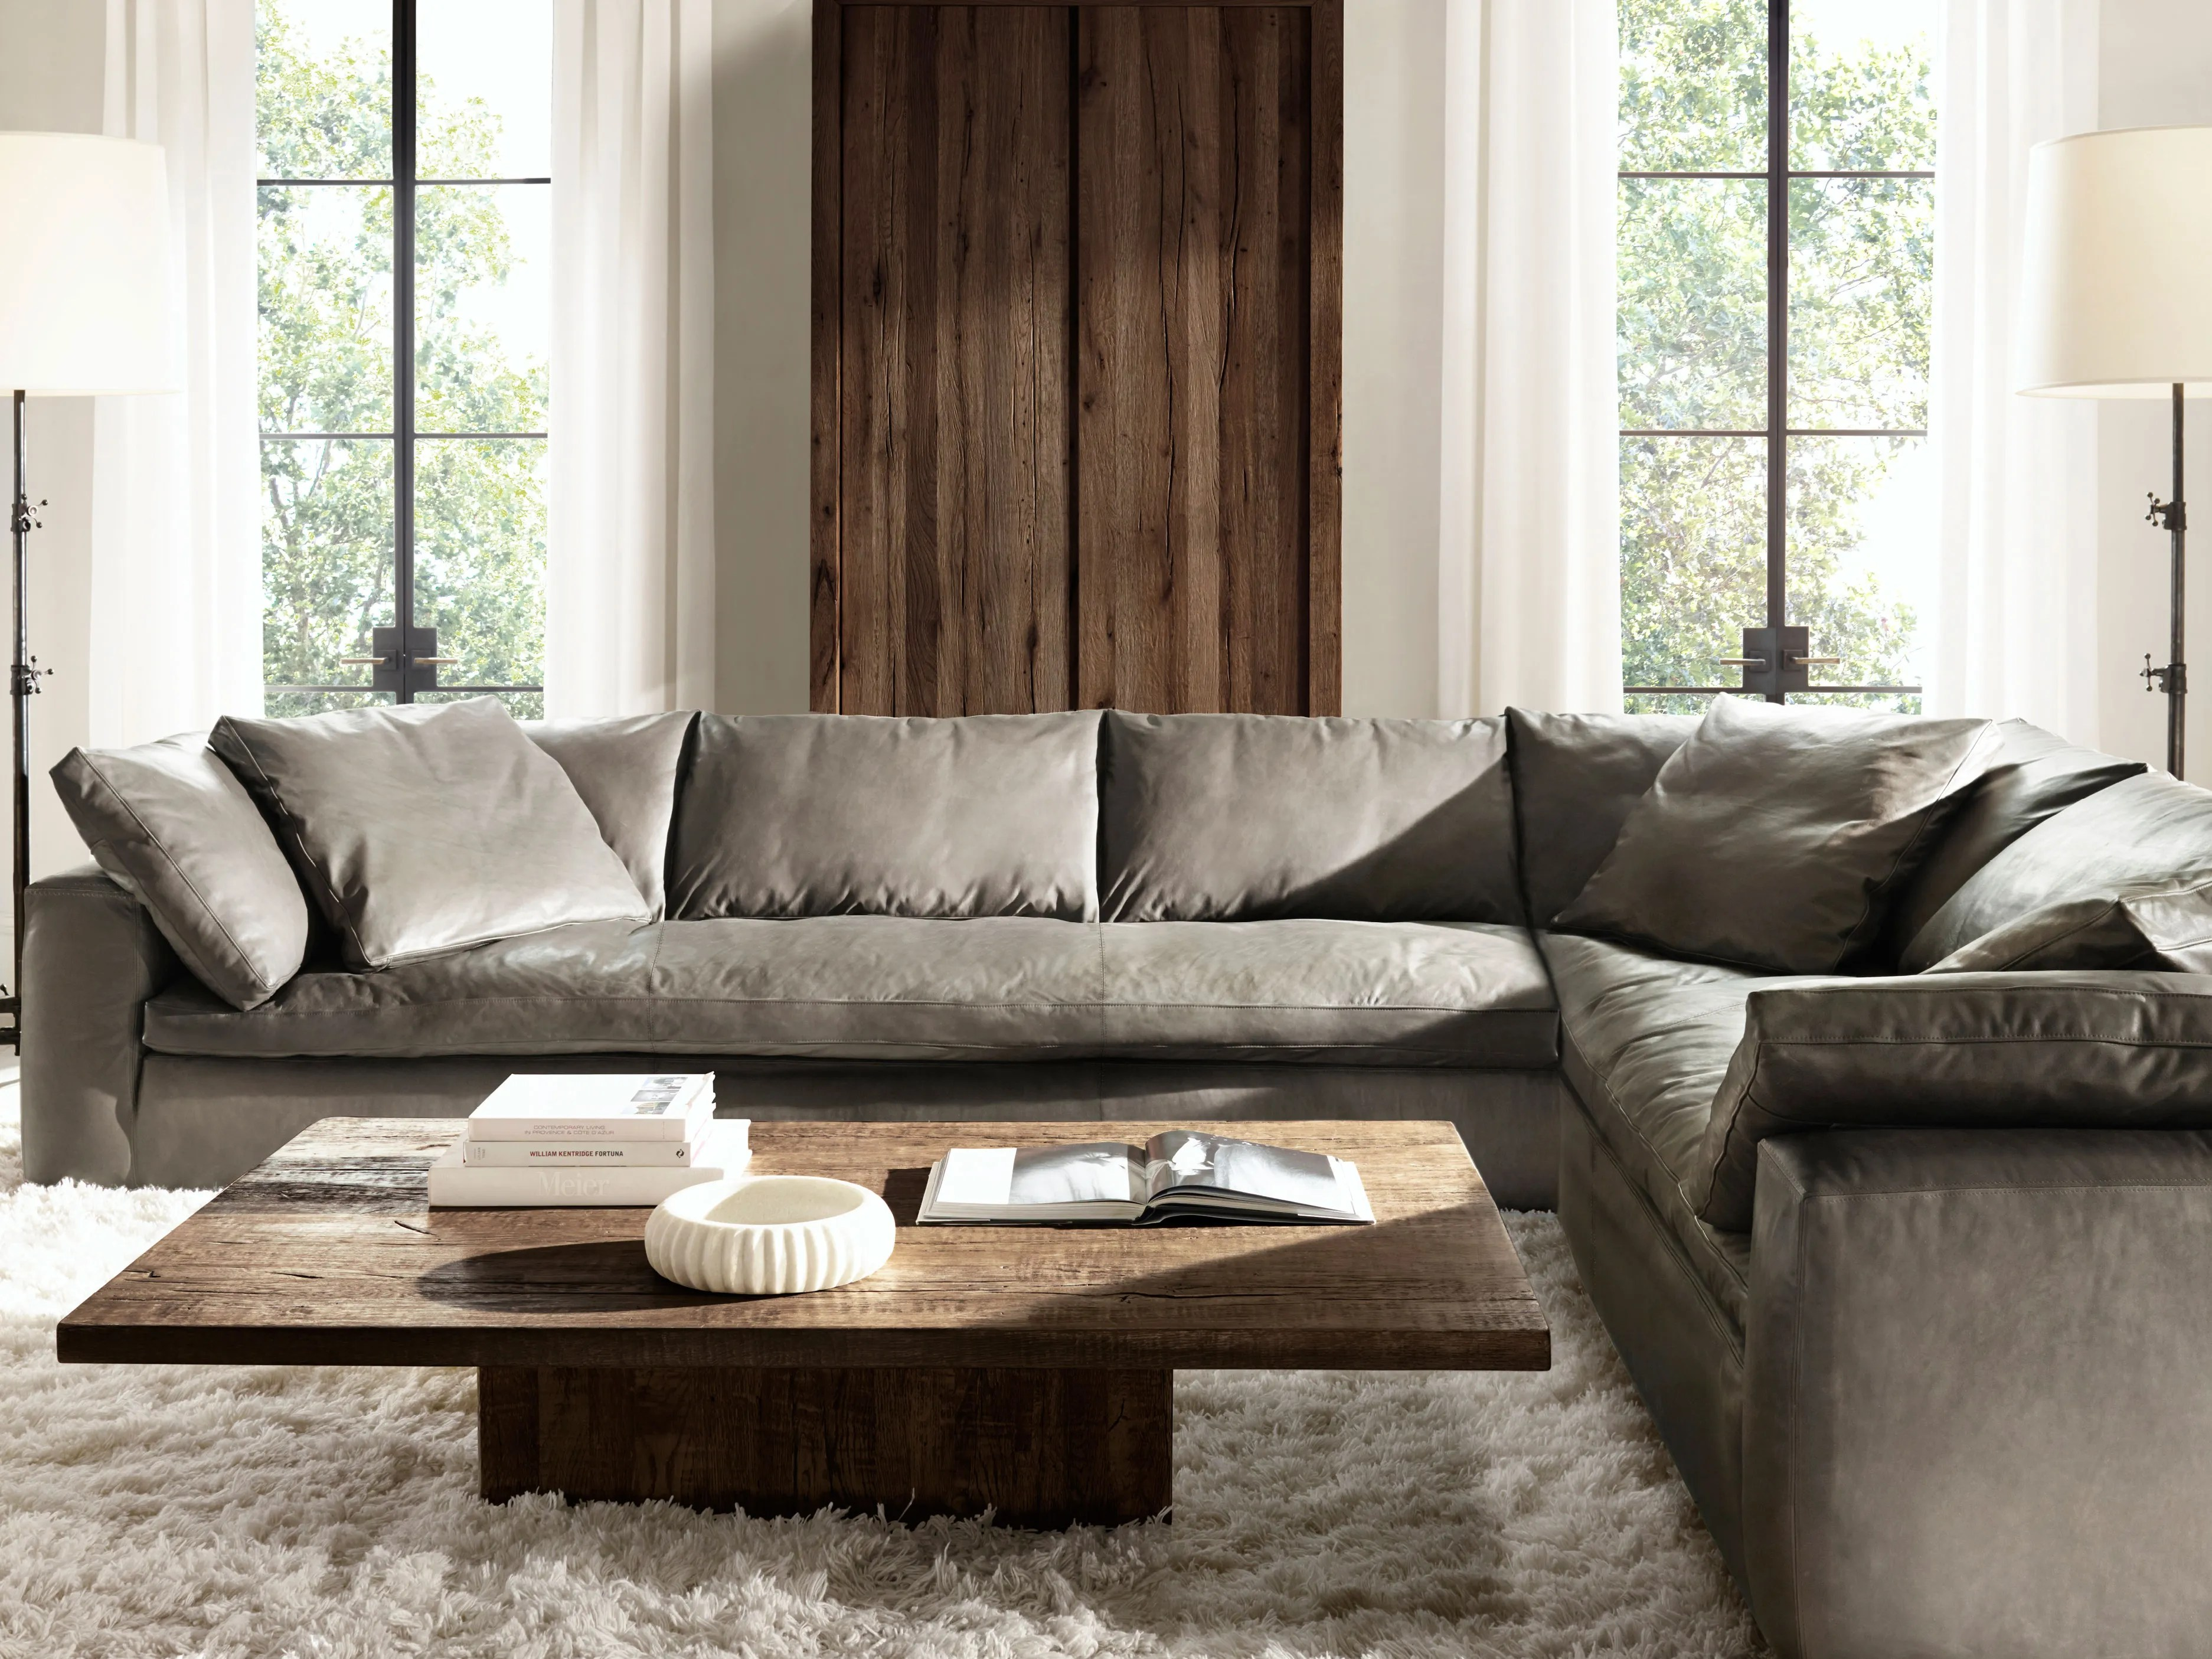 Source Furniture Brampton How To Clean Leather Furniture Leather Couch Care Architectural